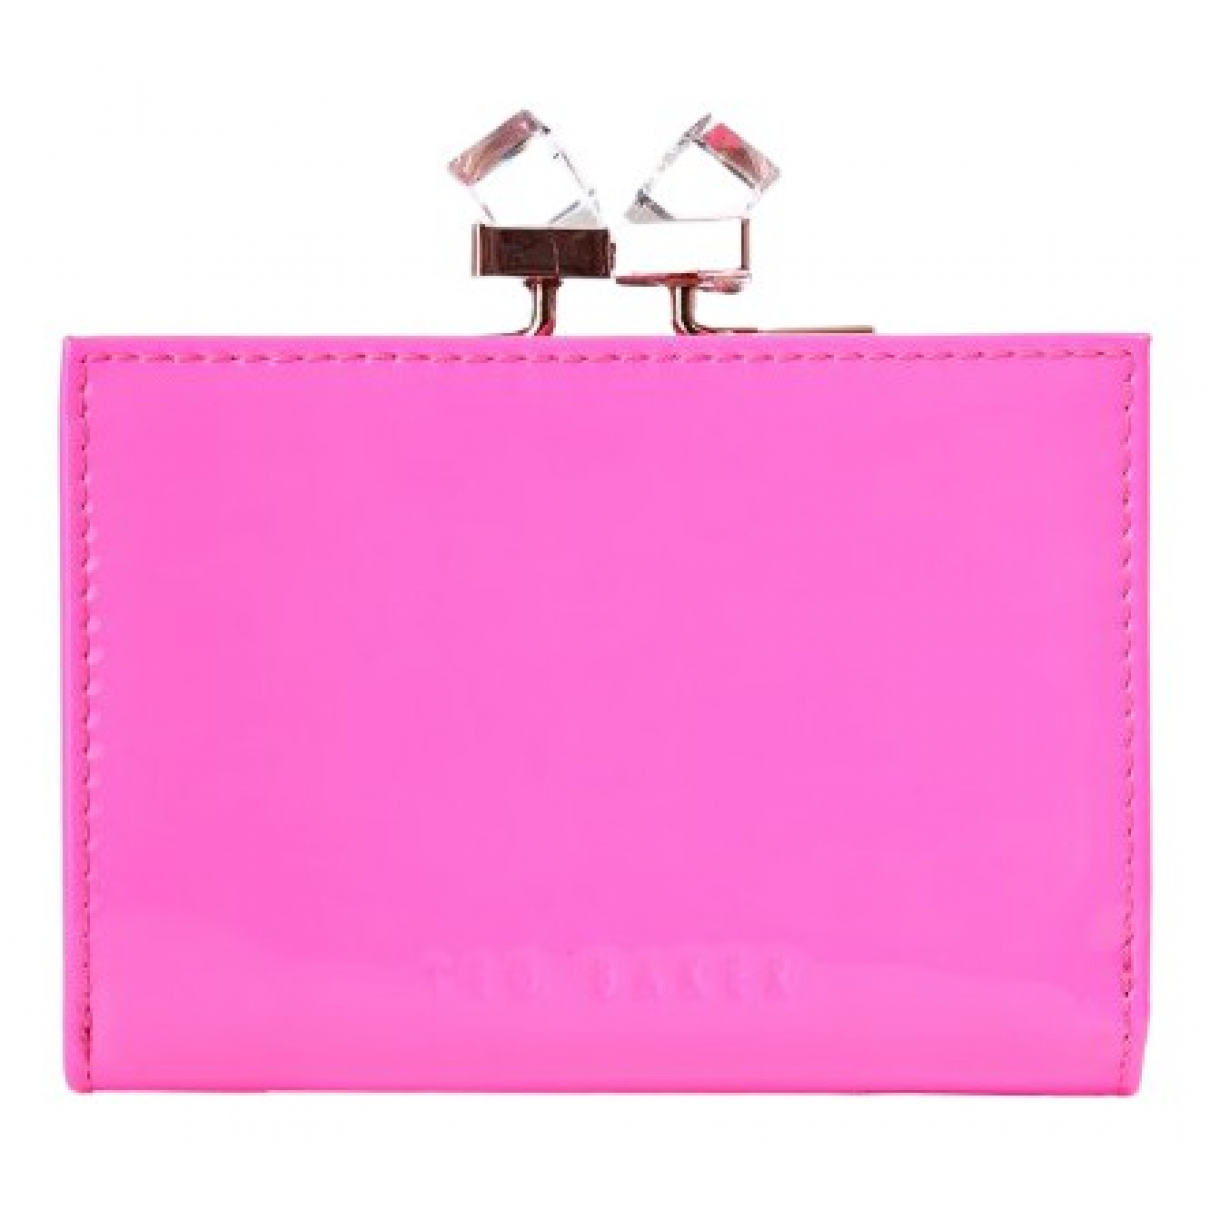 Ted Baker N Pink Patent leather Purses, wallet & cases for Women N